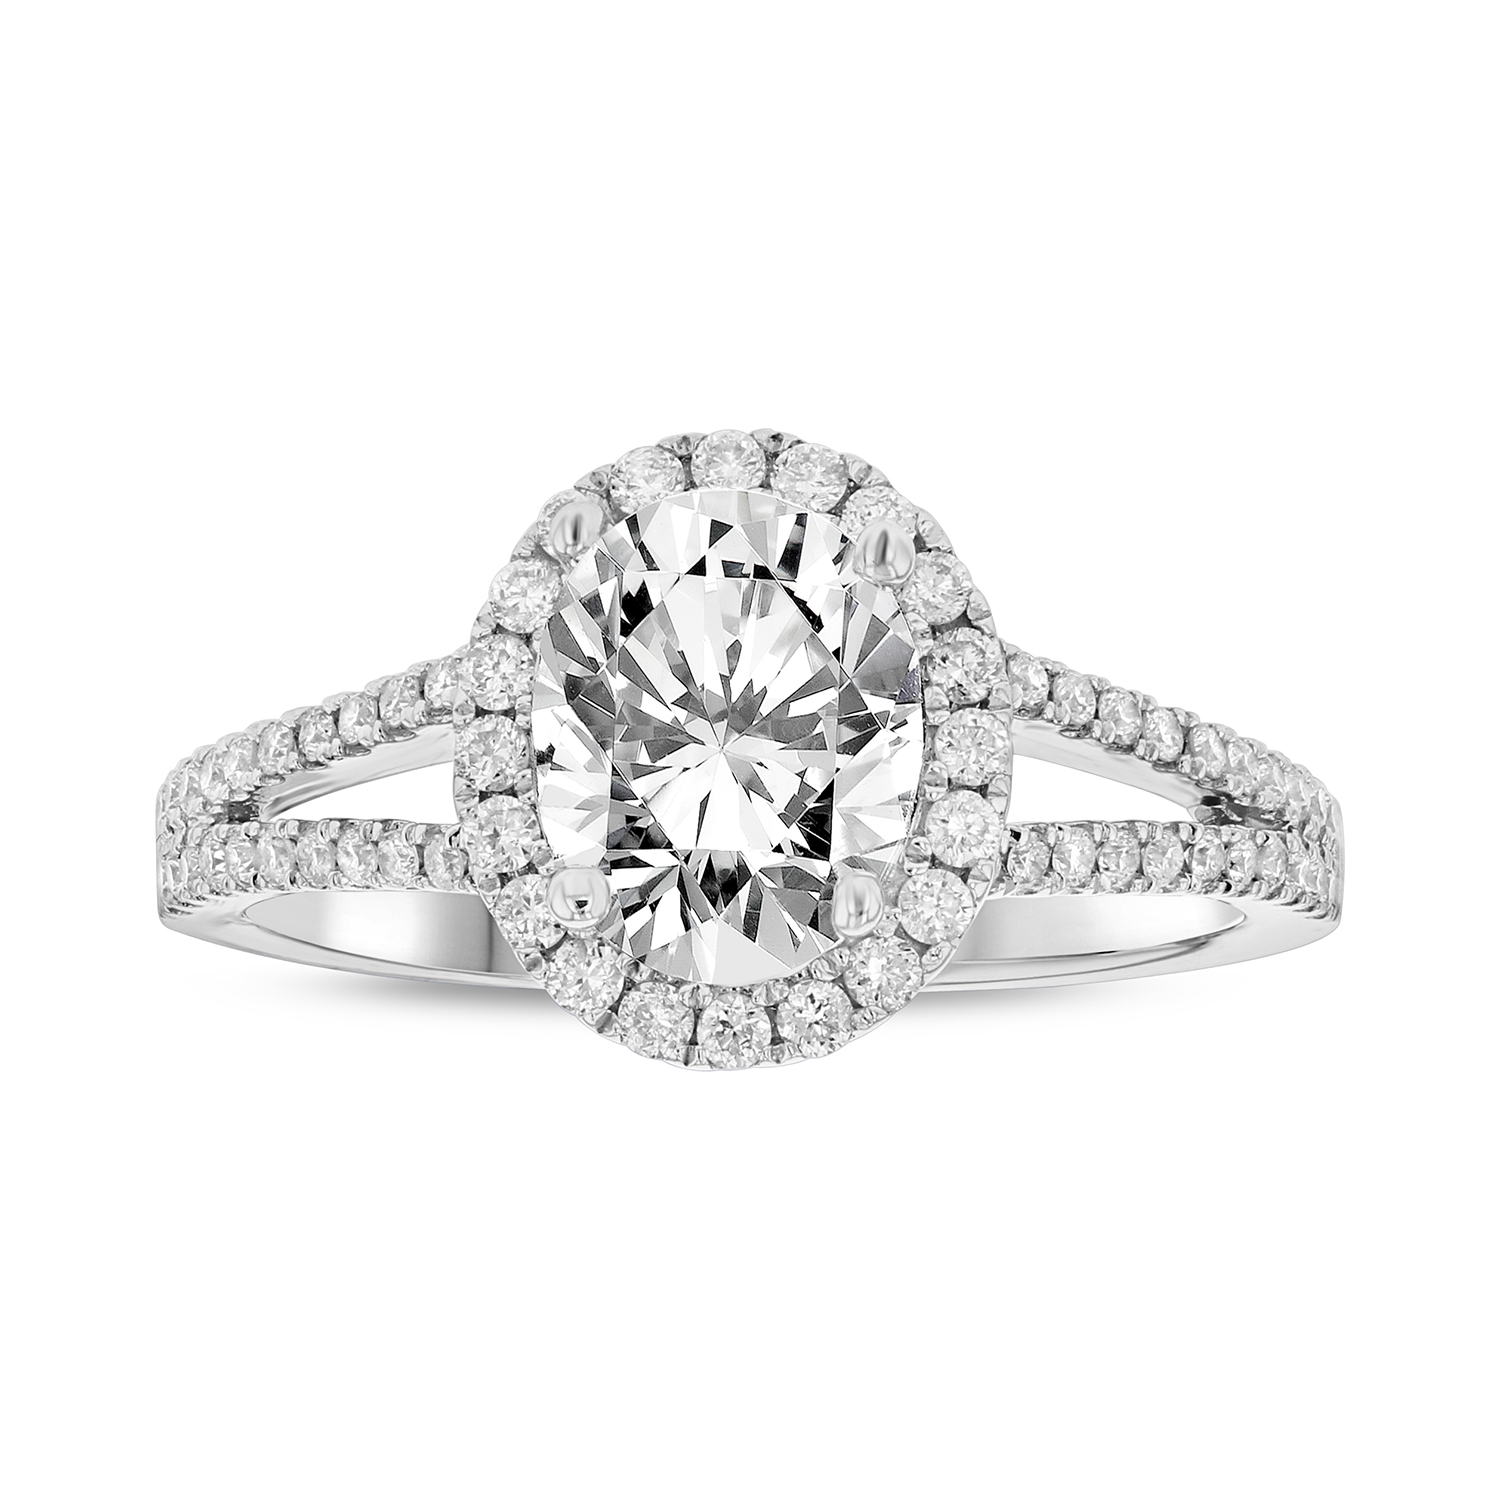 View 1.27ctw Diamond Engagement Ring in 18k White Gold